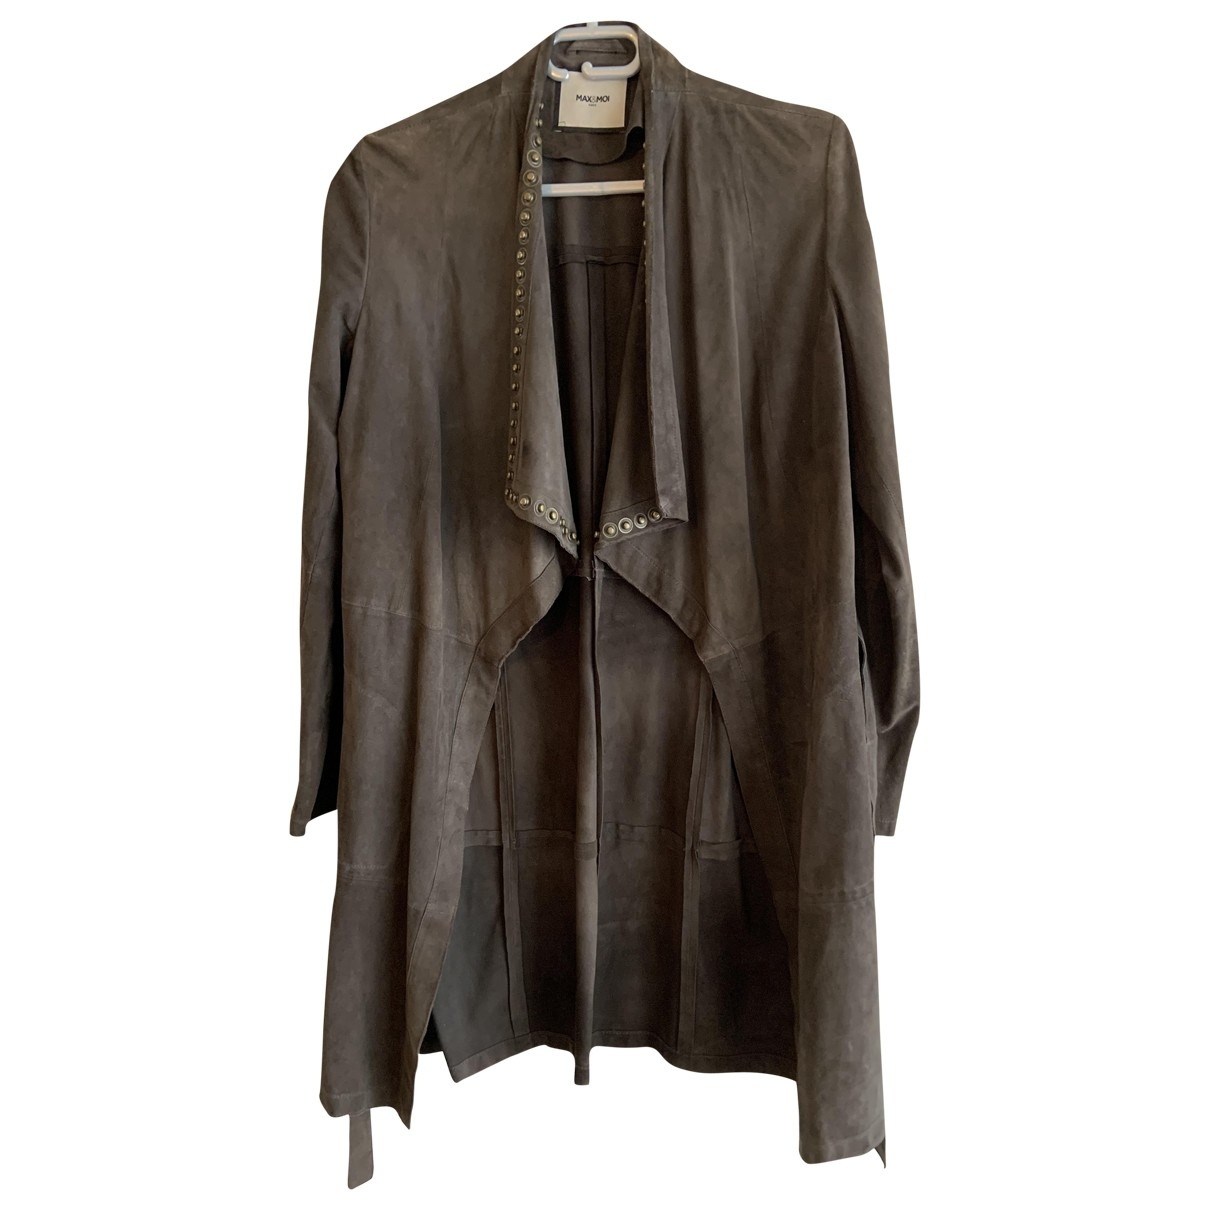 Max & Moi \N Brown Leather jacket for Women S International